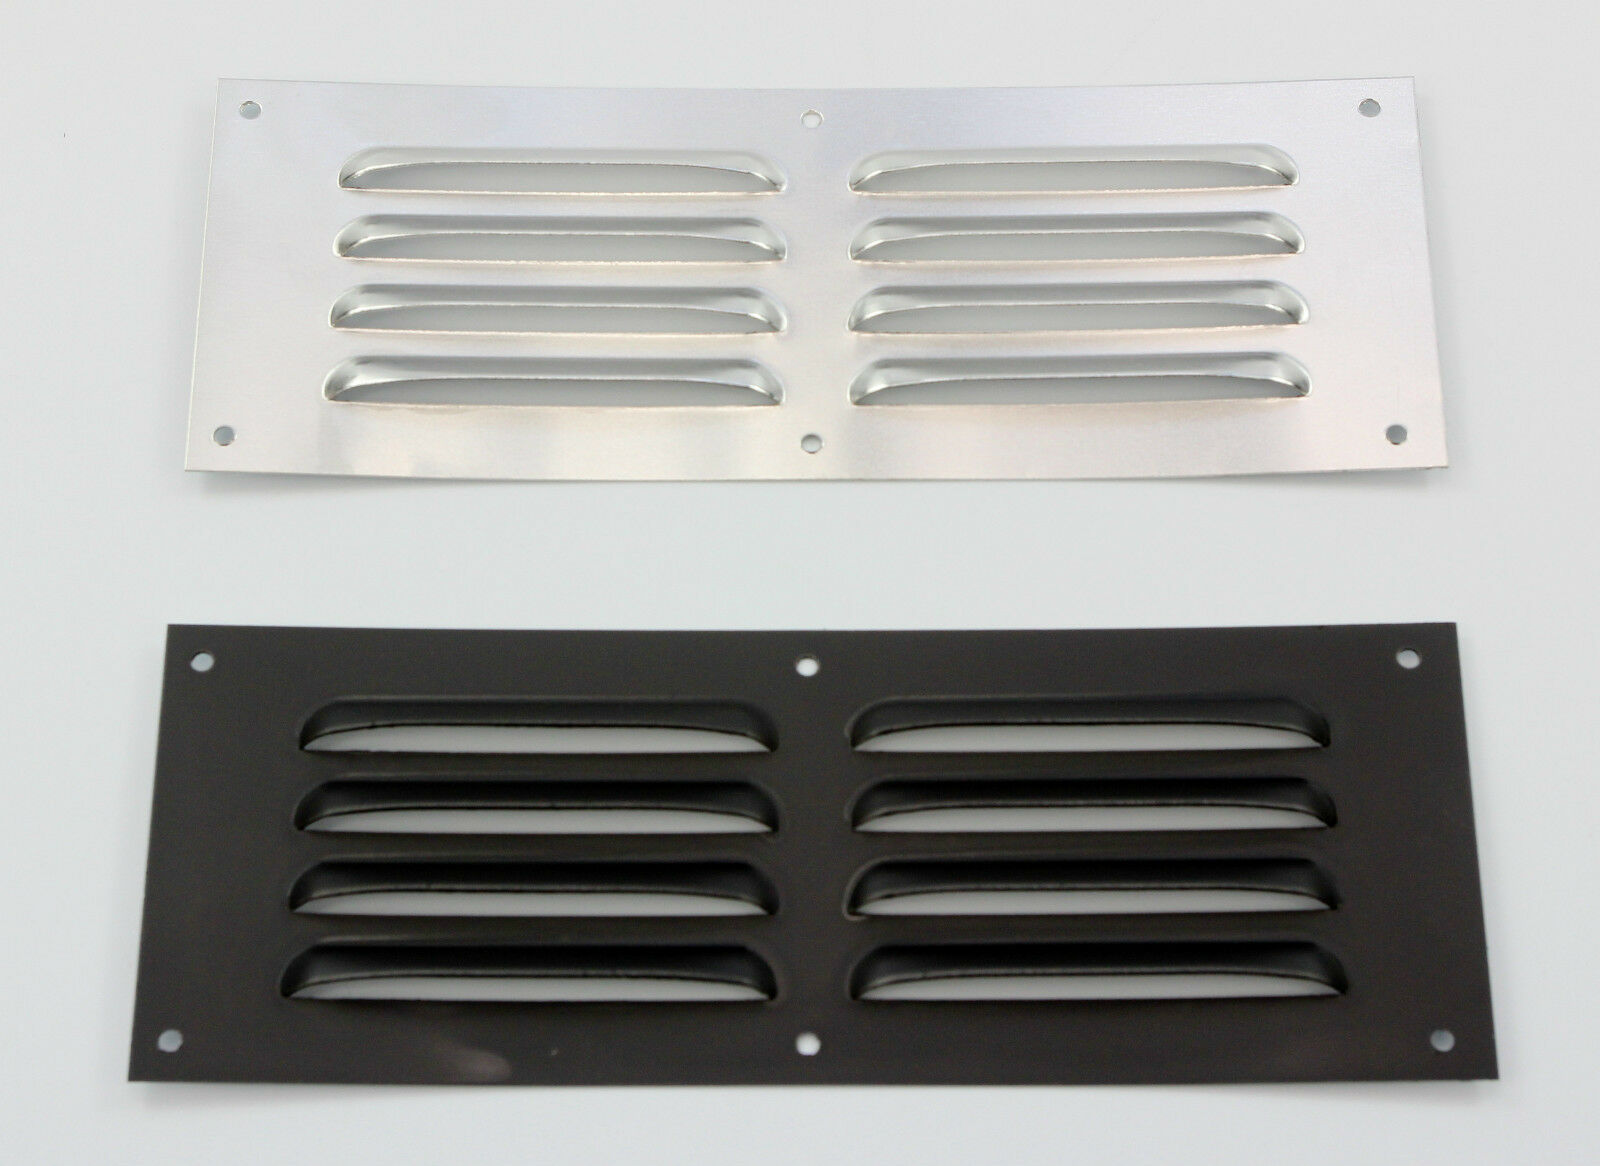 #2B2927 Louvre Air Vent Ventilation Grill For Walls Doors Caravans  Highly Rated 2309 Door With Ventilation Grille wallpapers with 1600x1166 px on helpvideos.info - Air Conditioners, Air Coolers and more